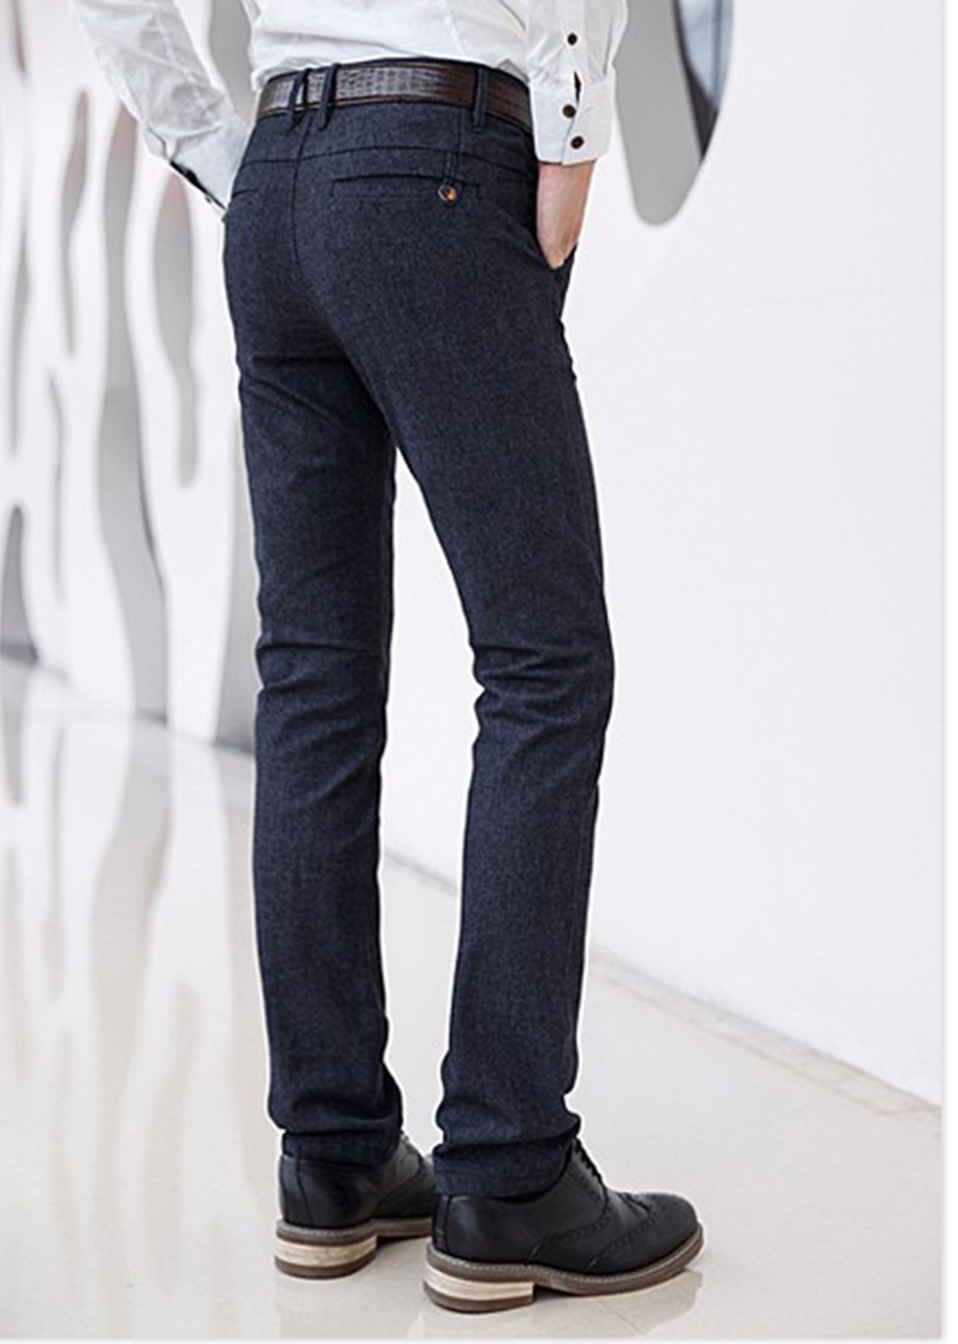 H2aa61051ee9f4a47a43bf6718108bbf75 HCYX Brand 2019 four season Classic High quality Men's Casual Pants Trousers Men Casual Pants Business Straight Size 38